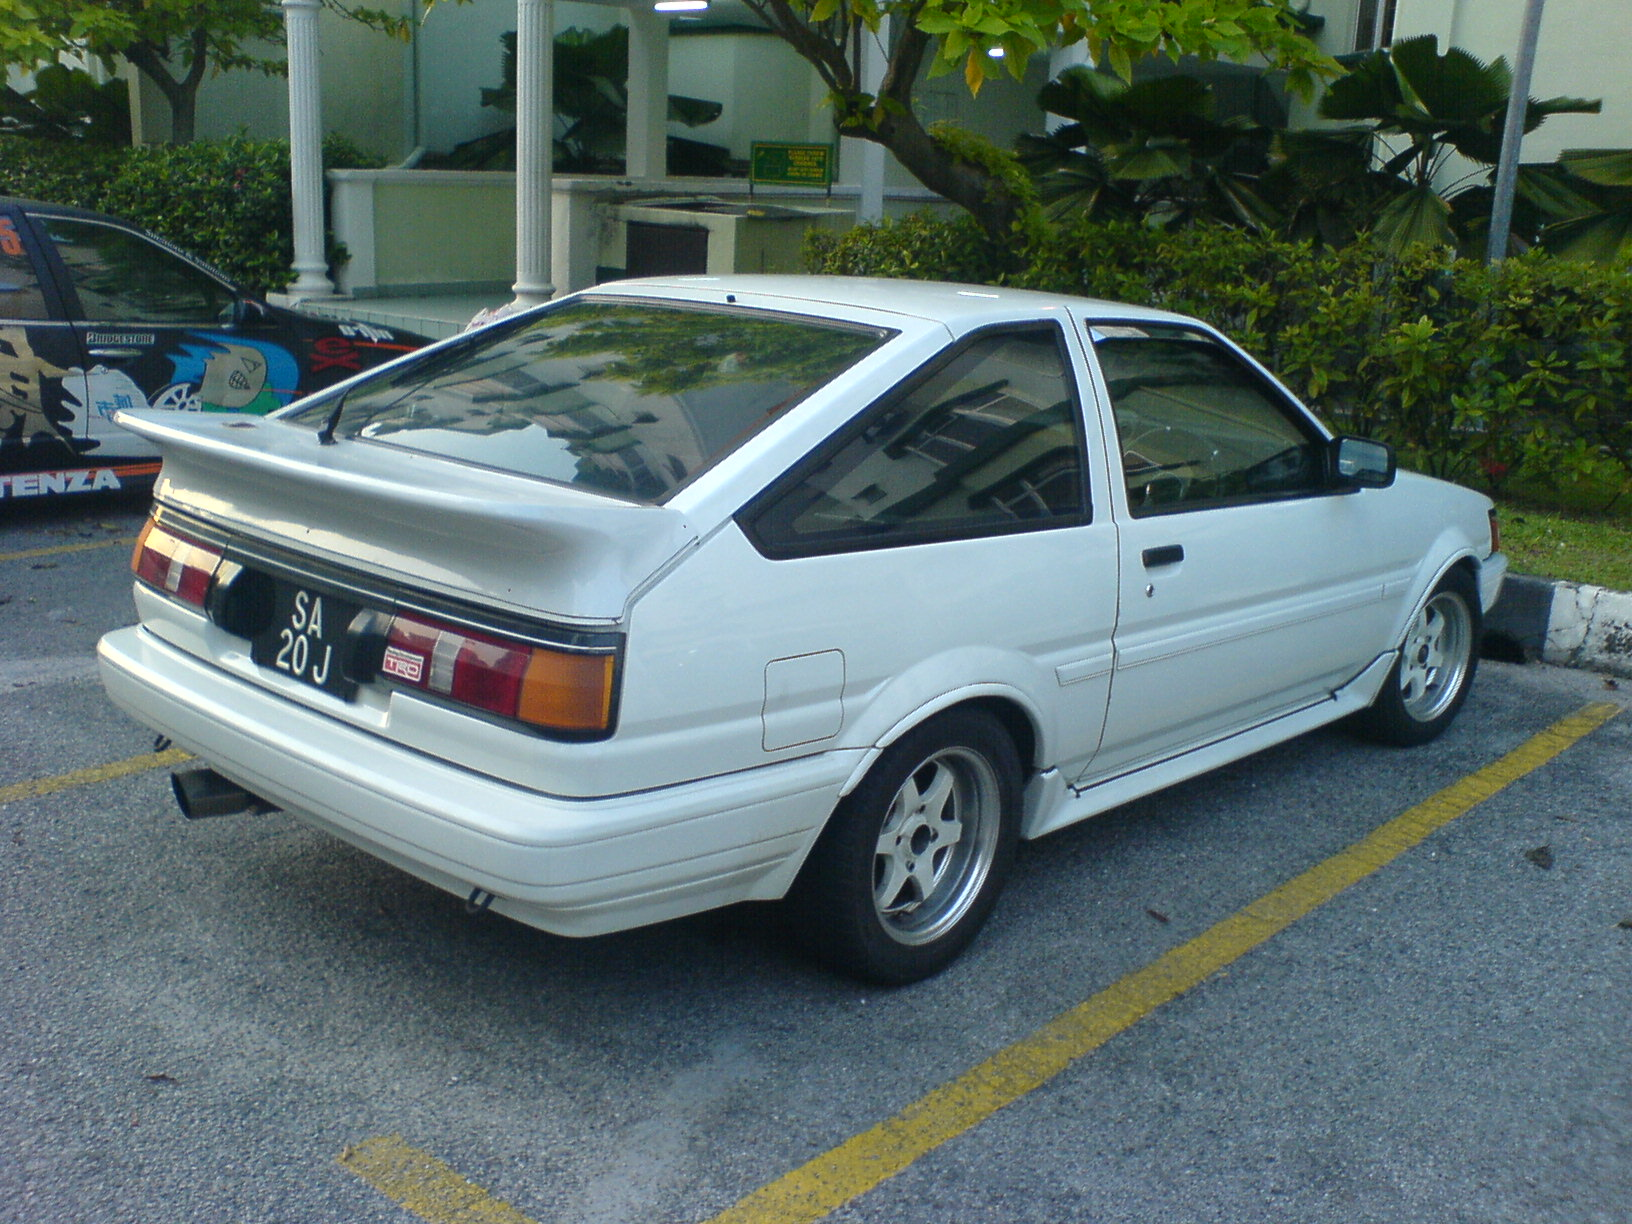 Toyota Ae86 Carsut Understand Cars And Drive Better Headlight Wiring Diagram Levin